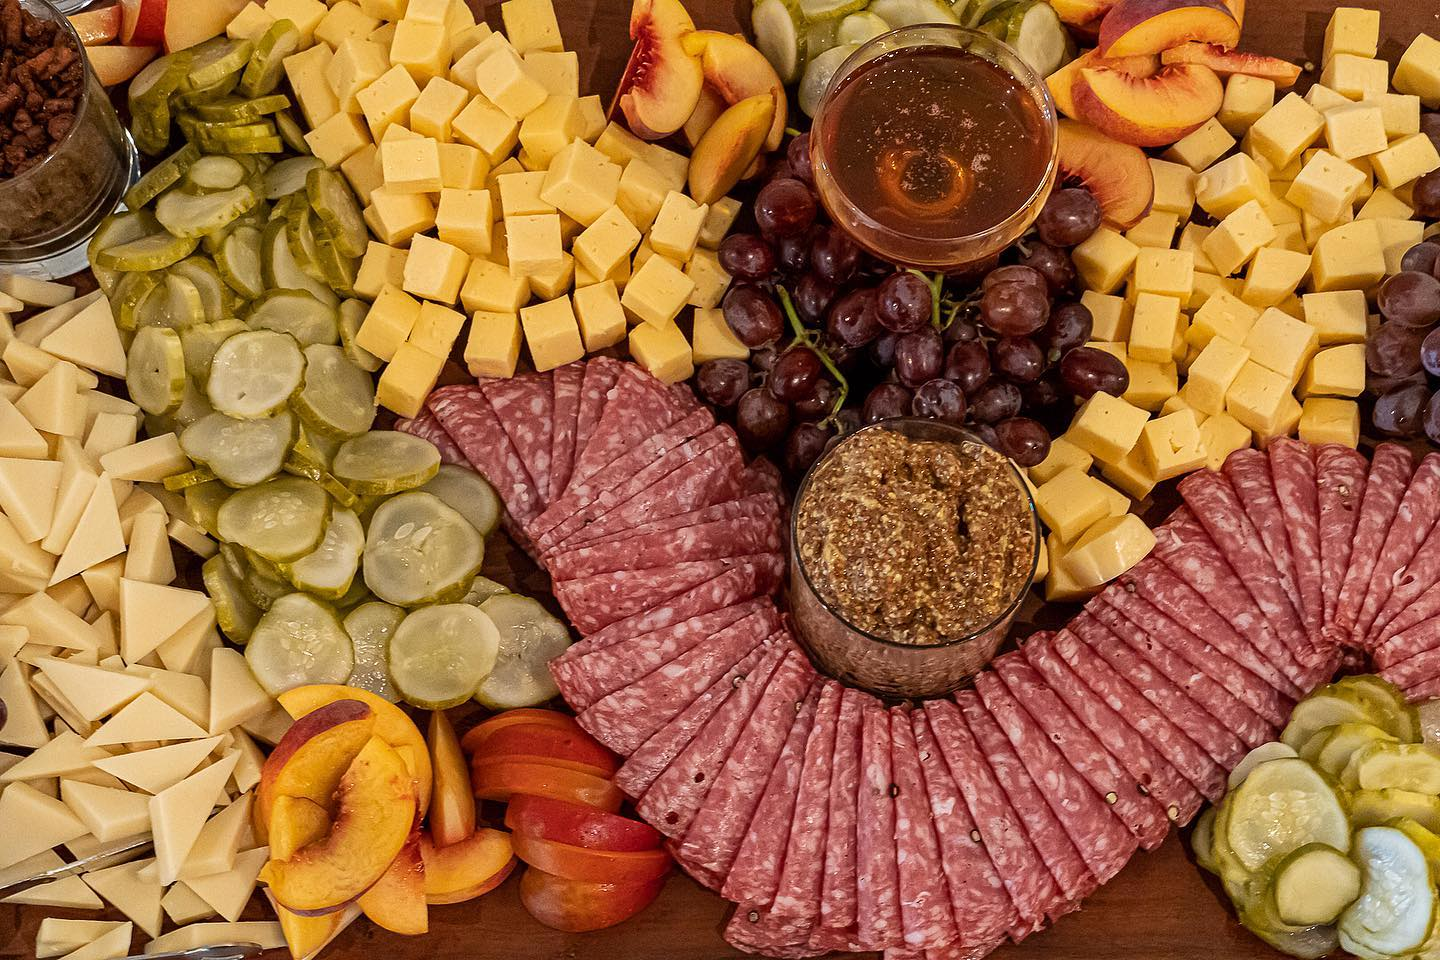 Chef inspired charcuterie